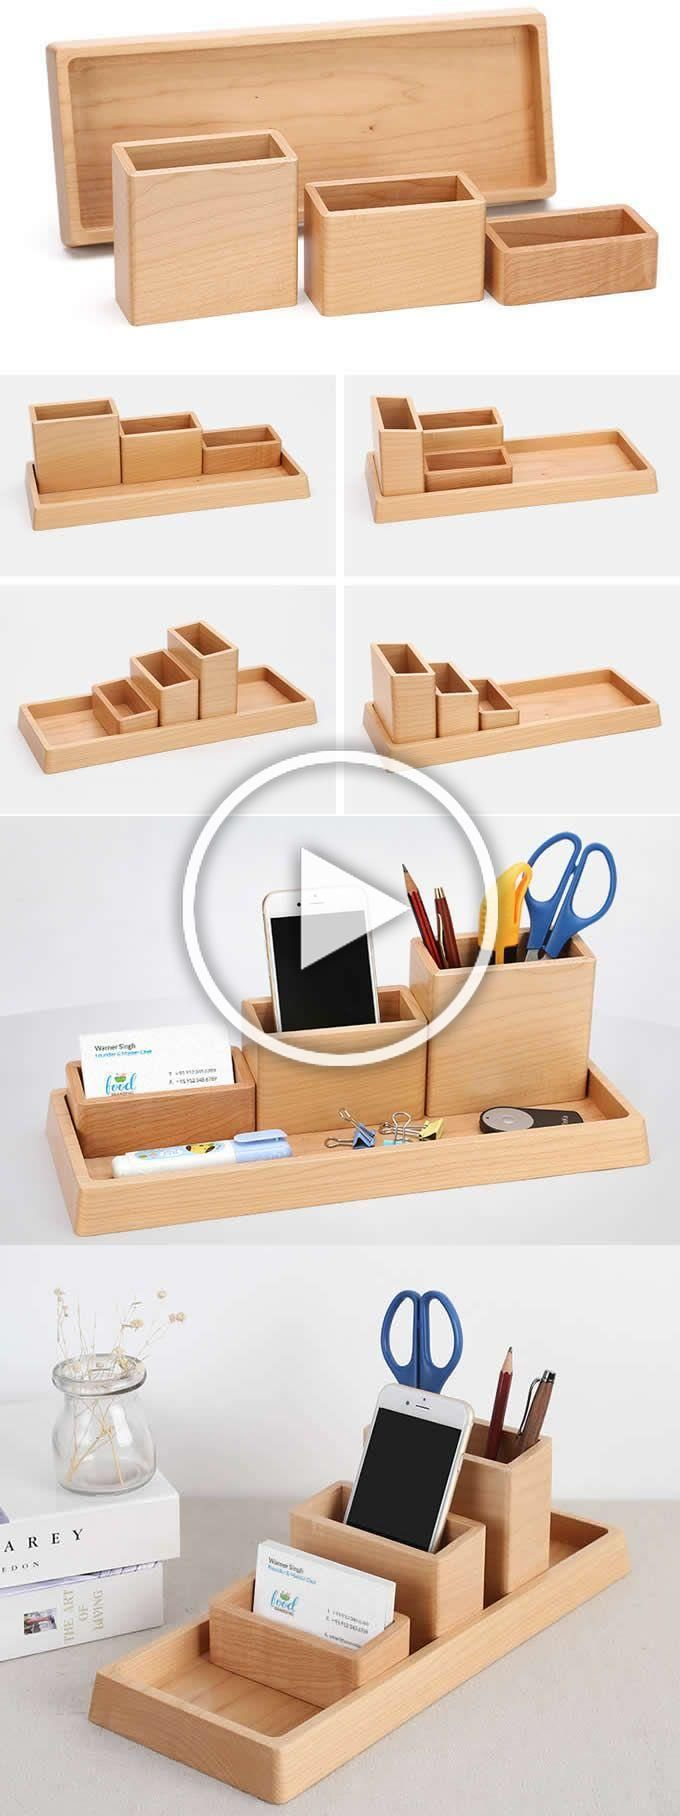 4 Compartments Wooden Office Desk Organizer Collection Smart Phone